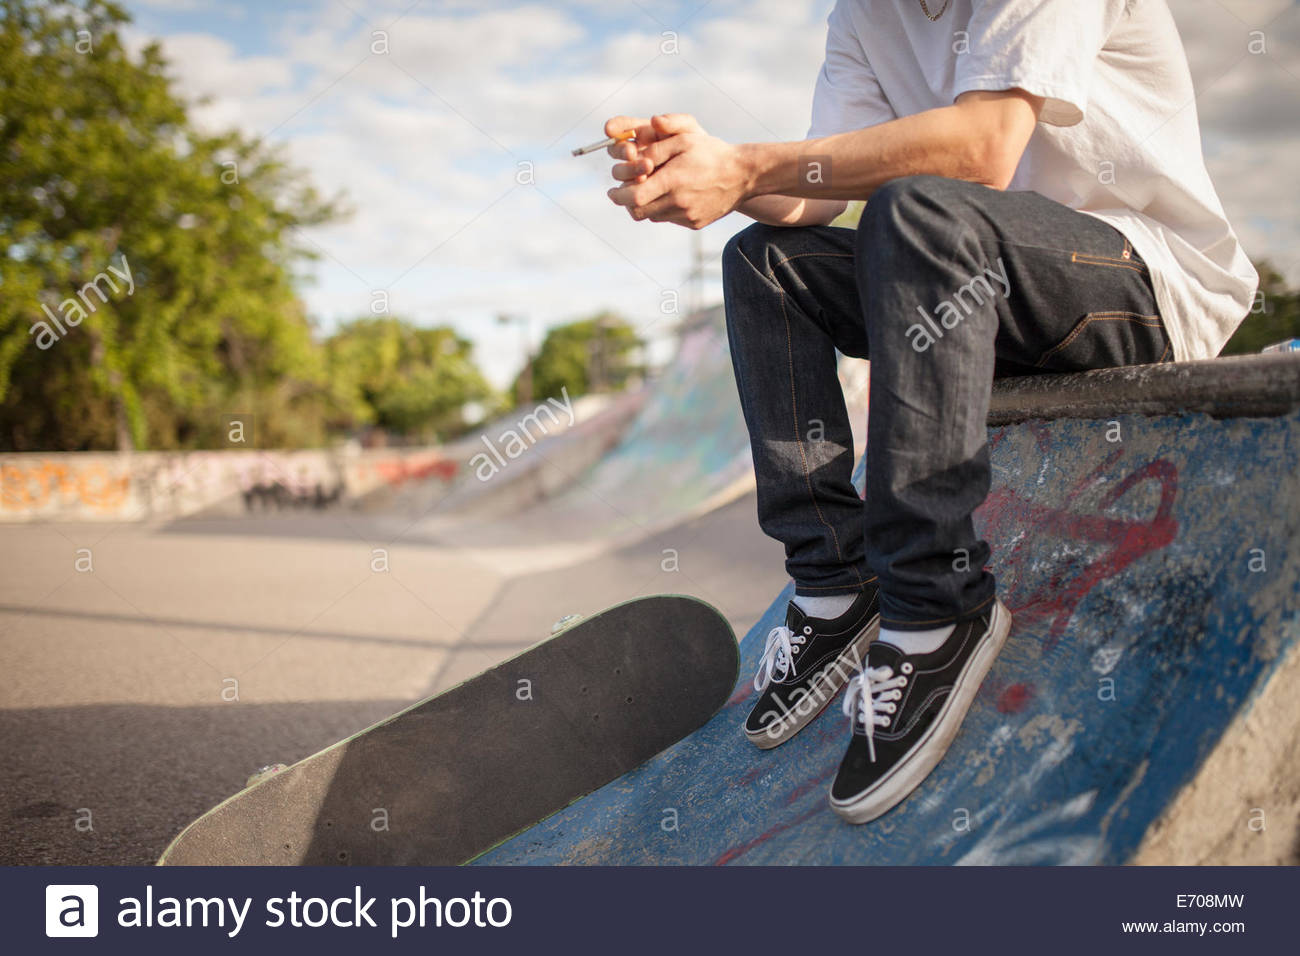 Cropped shot of young male skateboarder smoking cigarette in city skateboard park - Stock Image